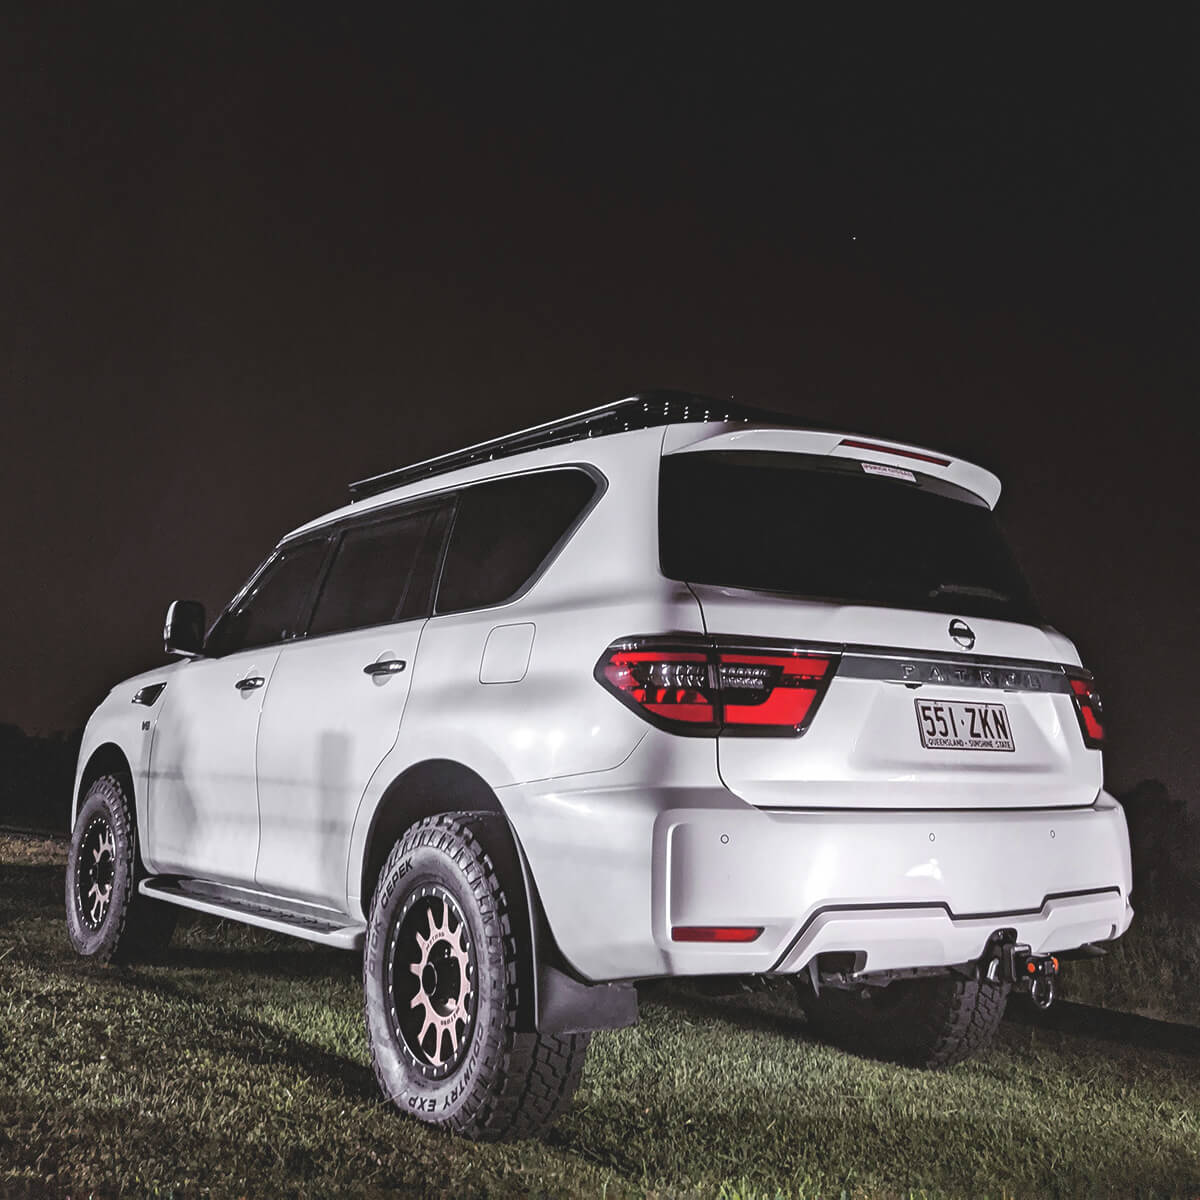 White 2019 Nissan Patrol Y62 with off-road modifications for Overlanding